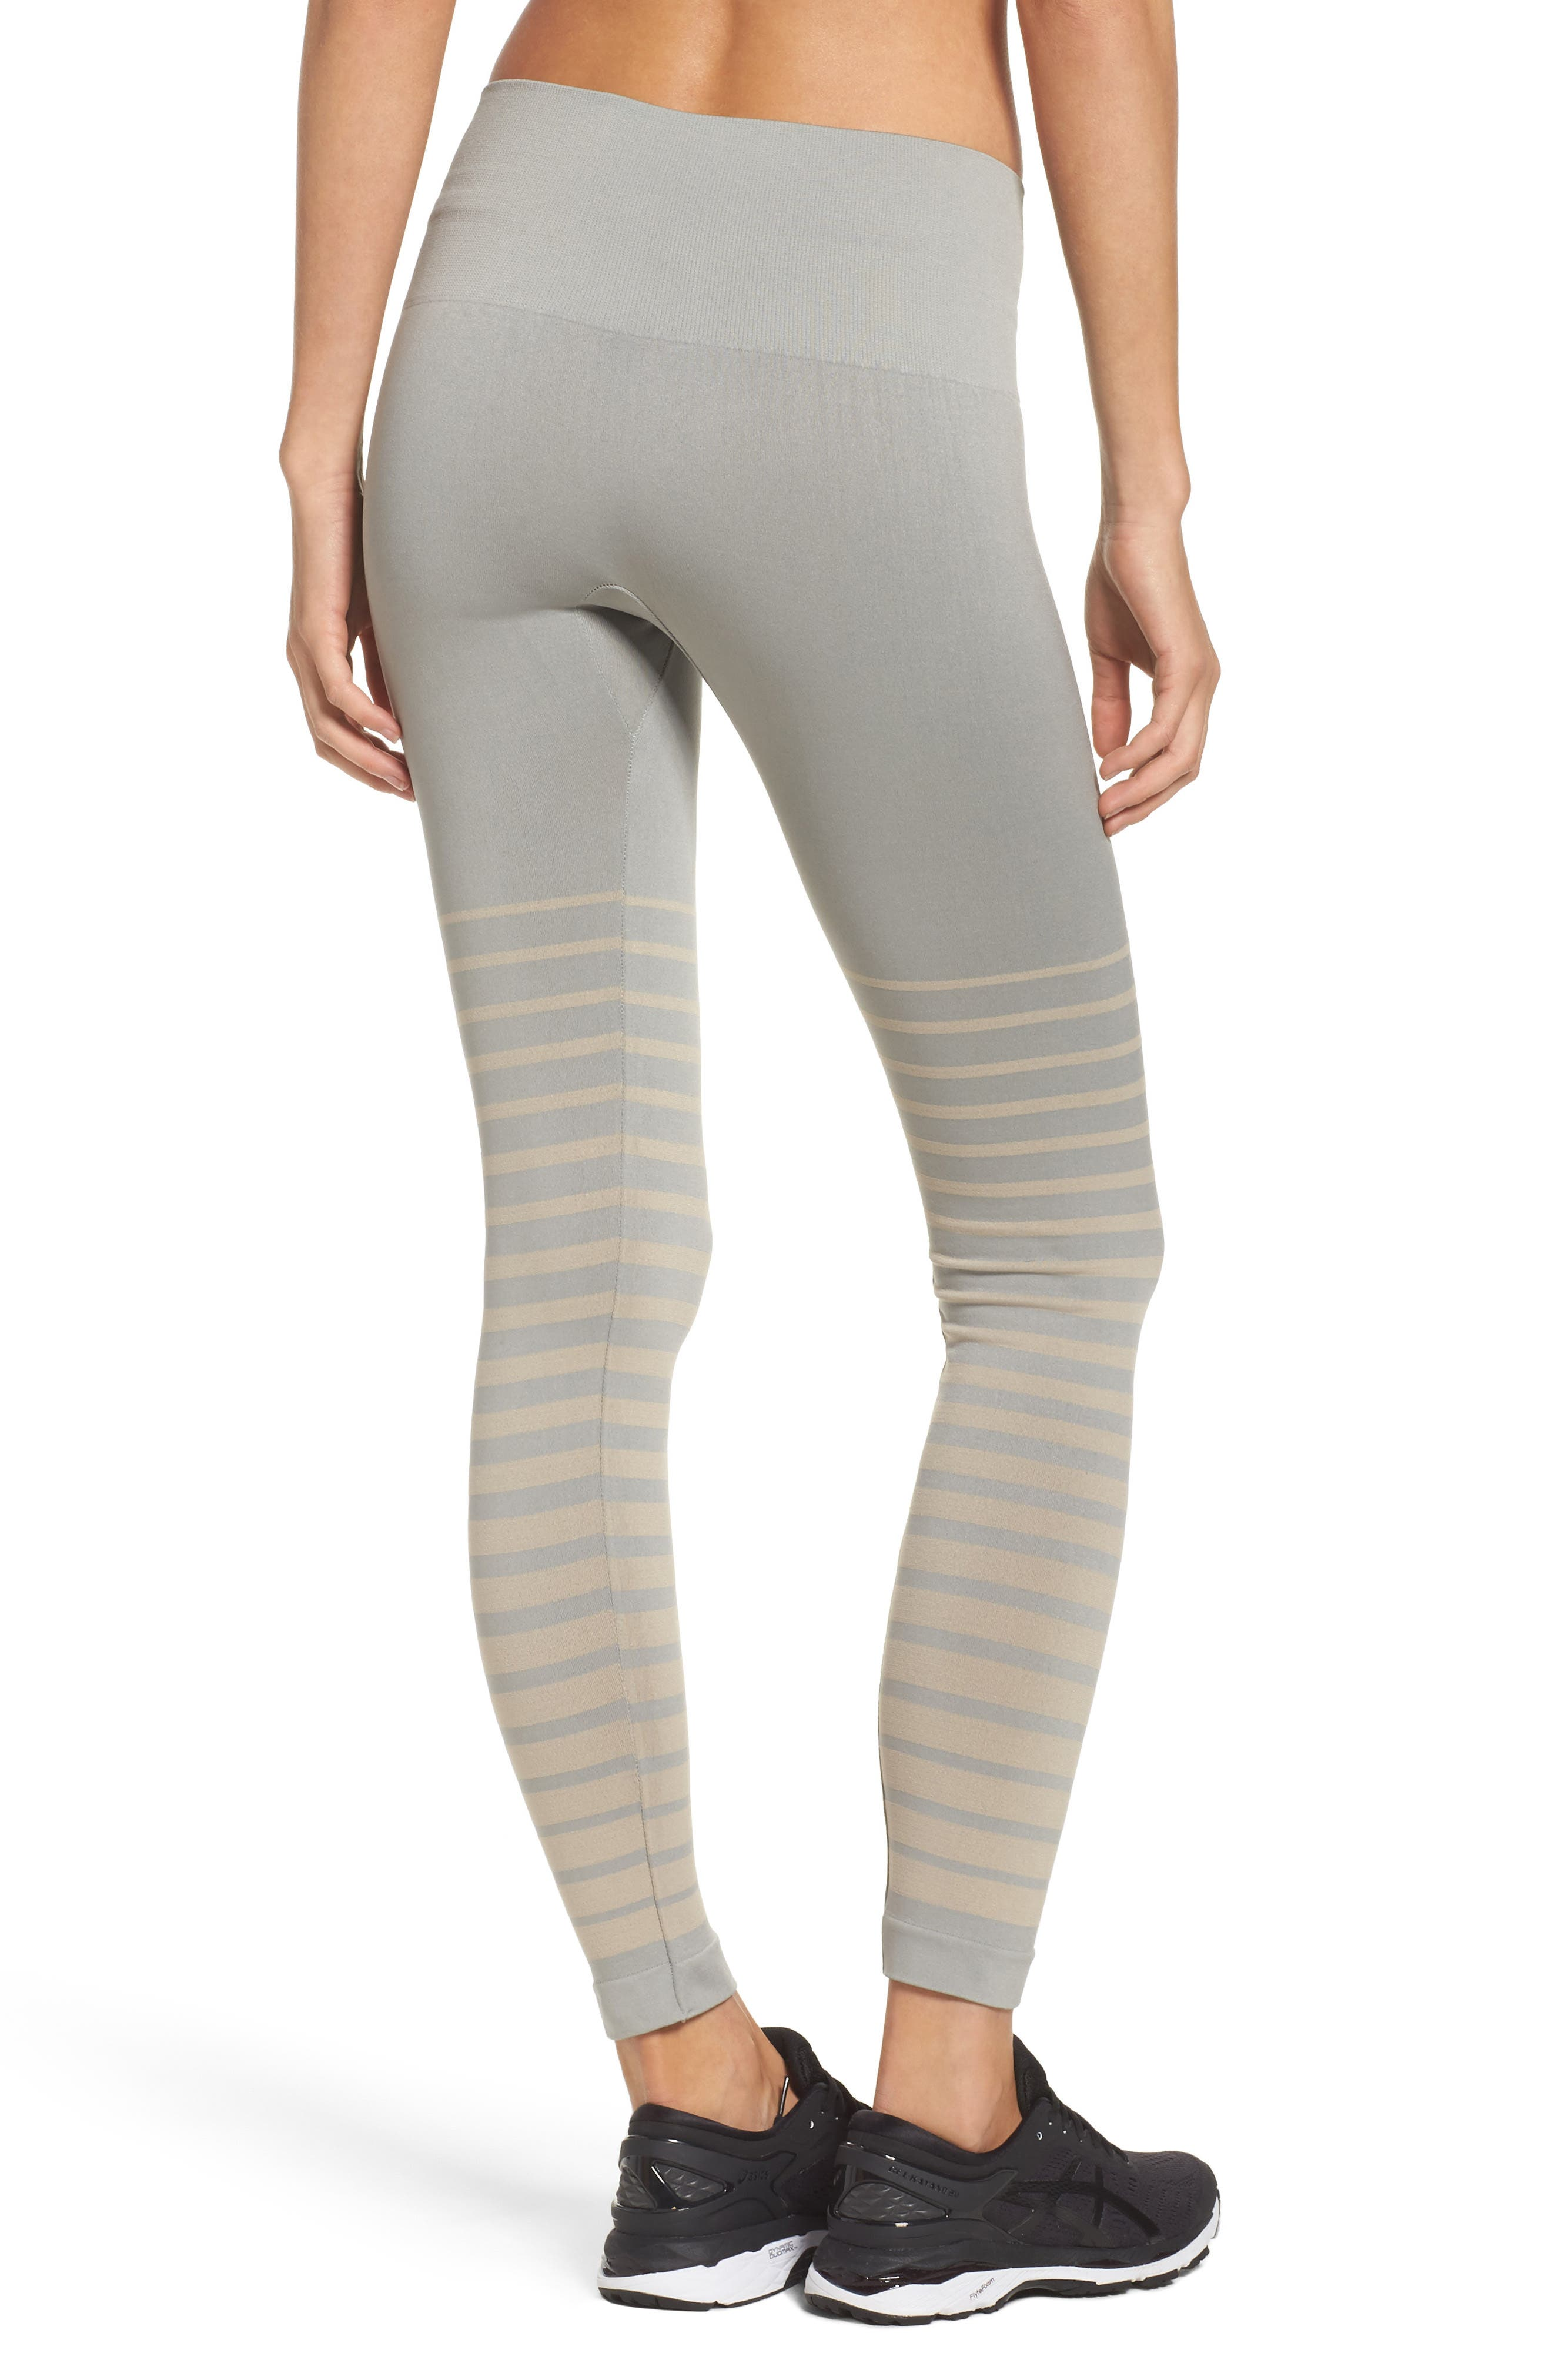 Front Runner High Waist Leggings,                             Alternate thumbnail 2, color,                             Wild Dove And Pink Tint